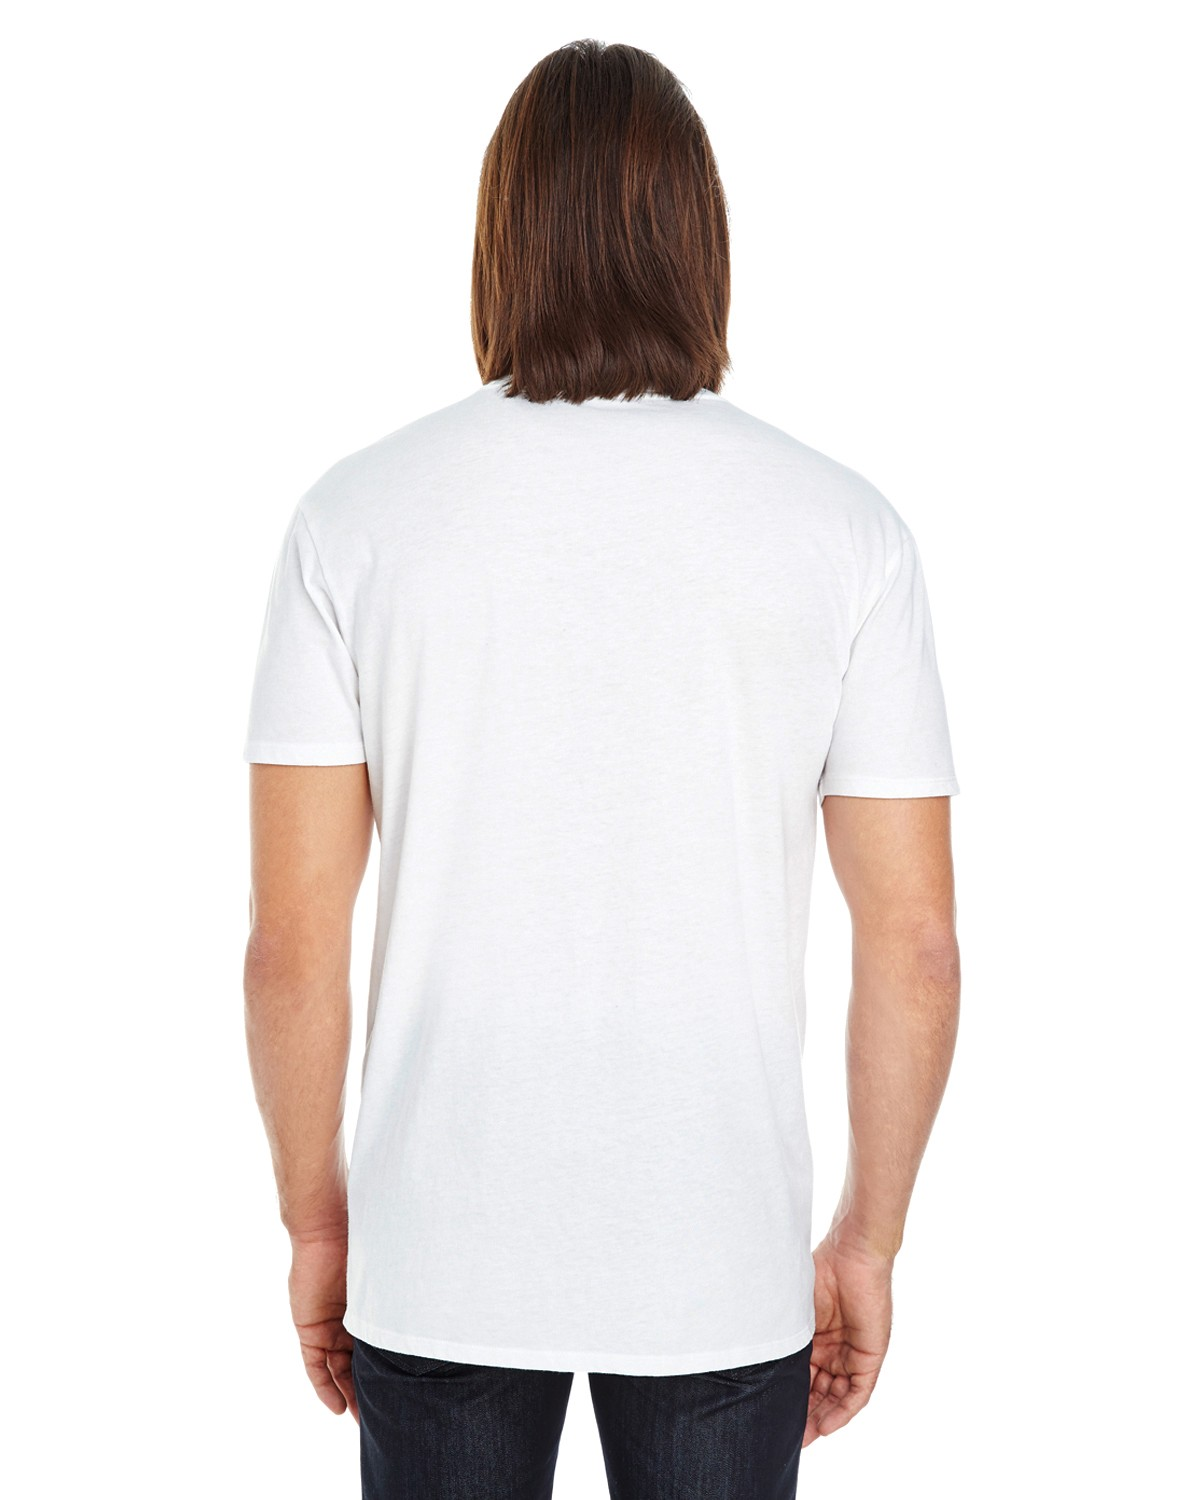 130A Threadfast Apparel WHITE